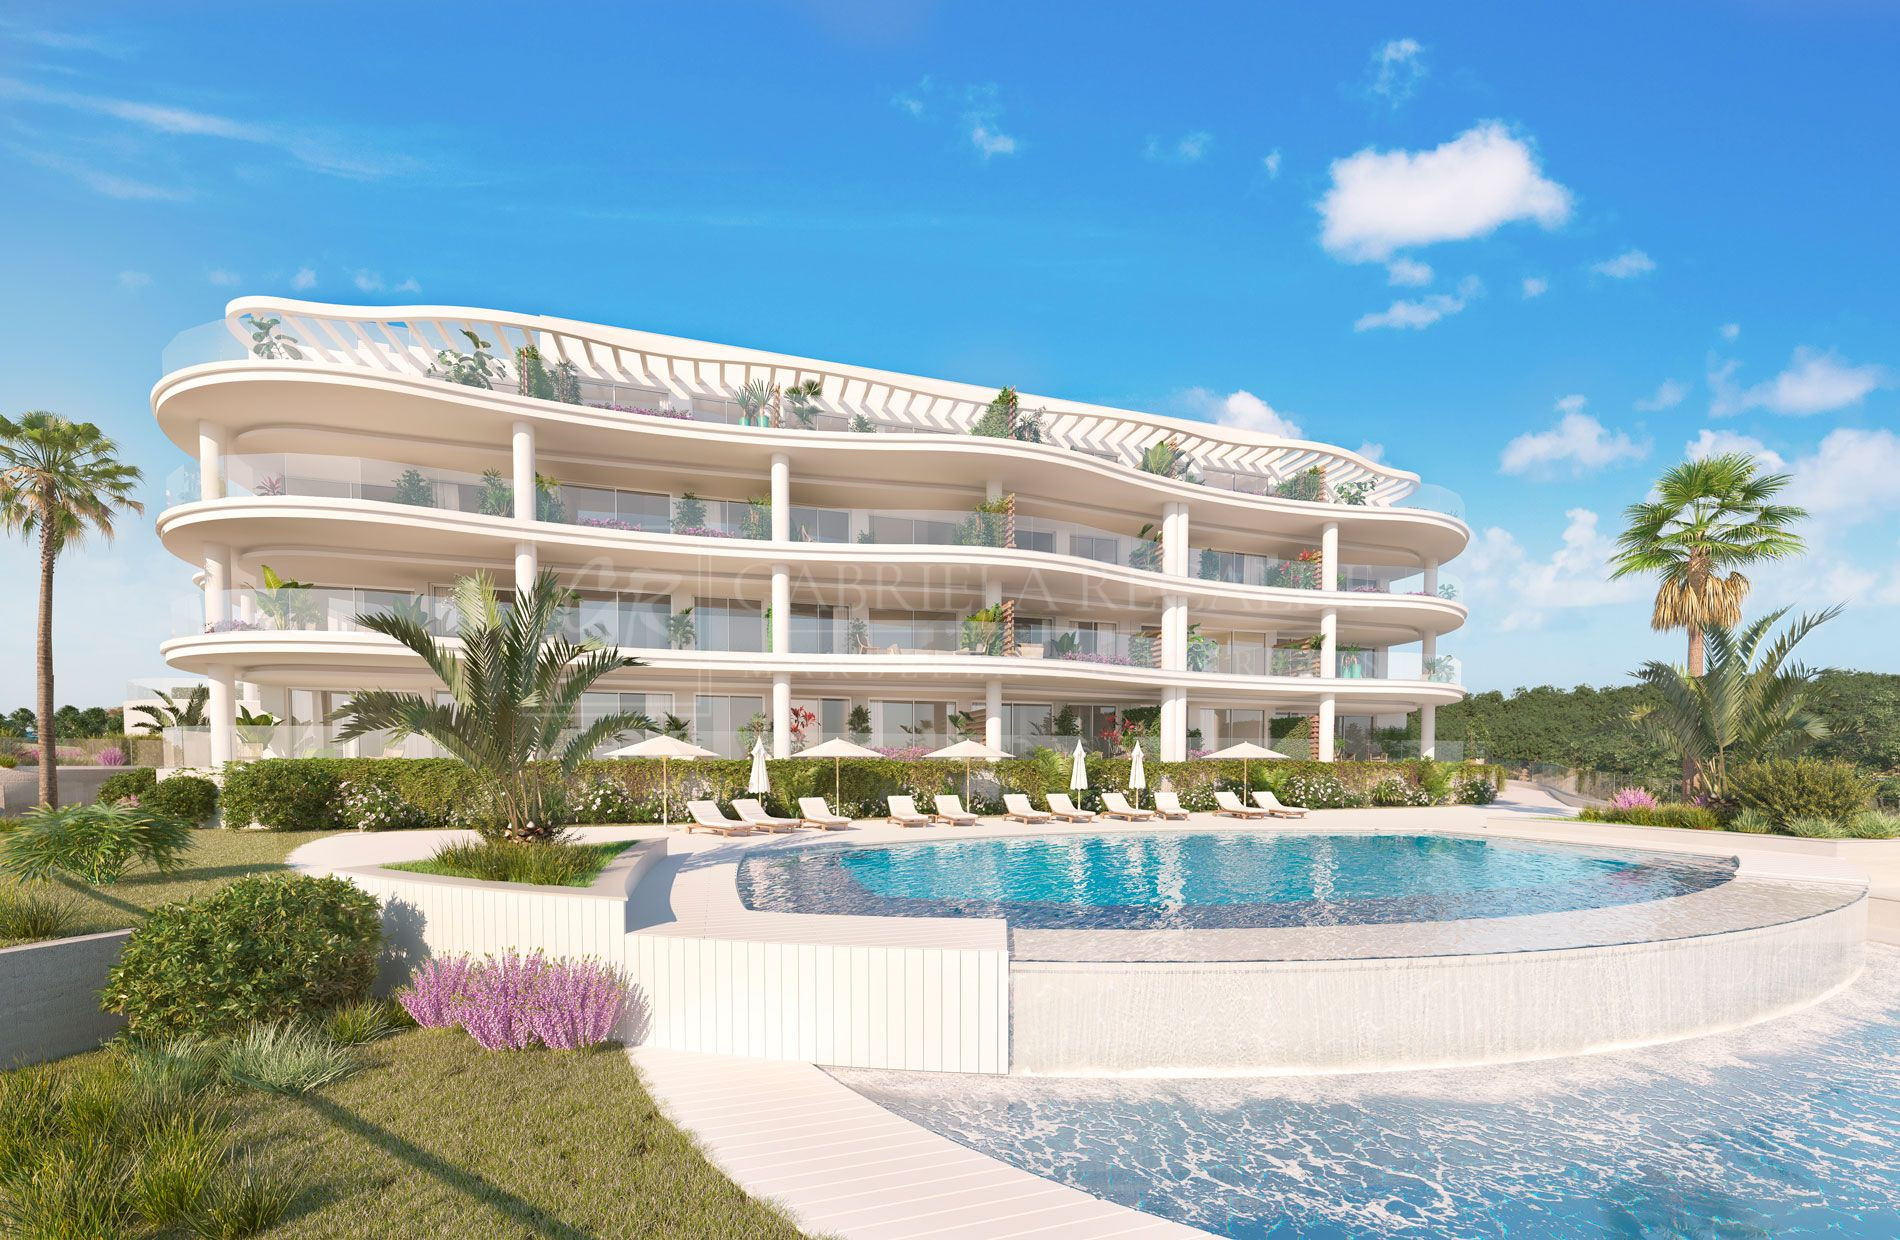 Panorama - Innovative and State-of-the-art Development